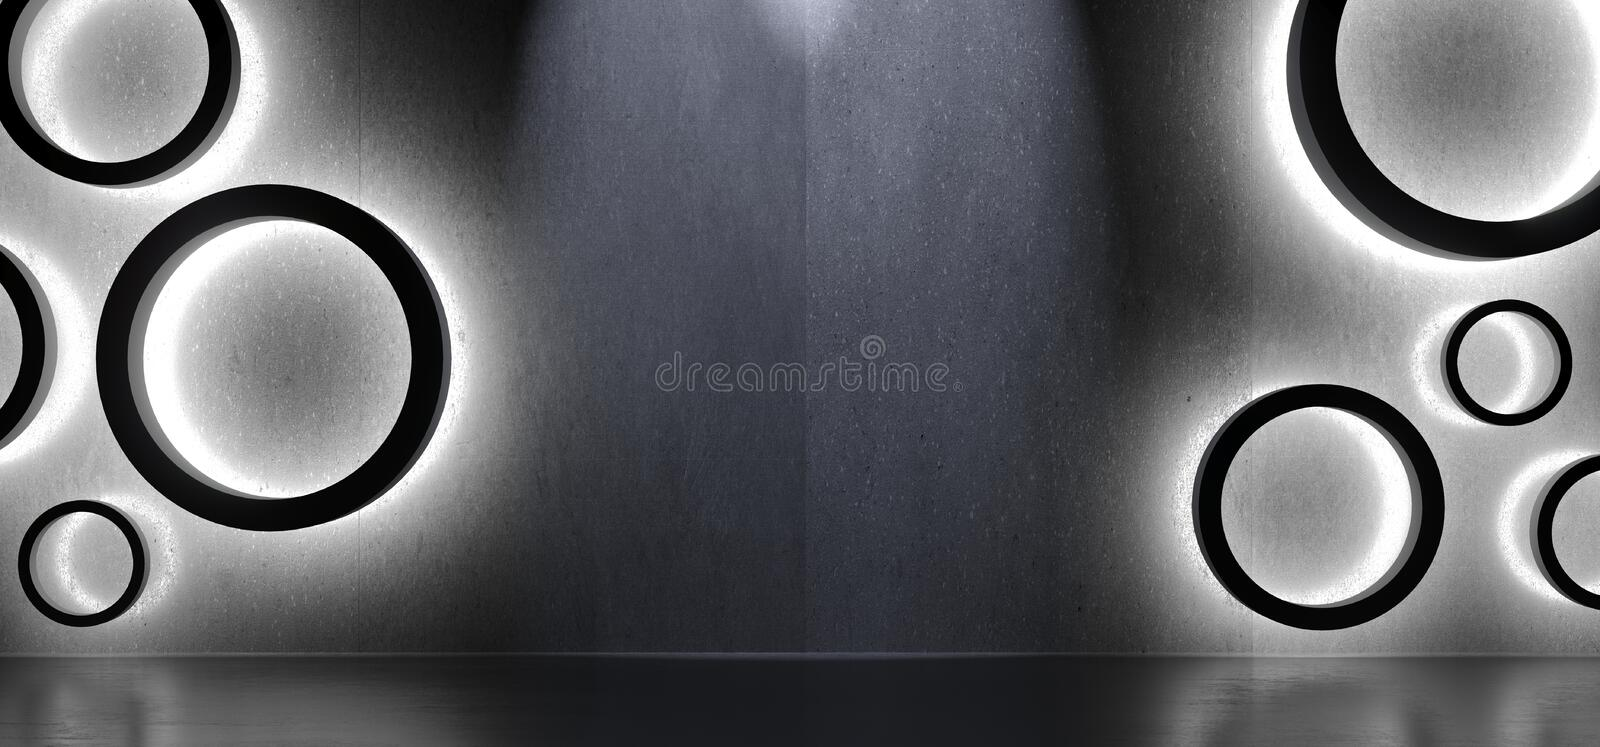 Abstract Shapes Circles Interior With Soft Light. 3D Rendering Of Abstract Shapes Circles Interior With Soft Light And Reflections Background stock illustration